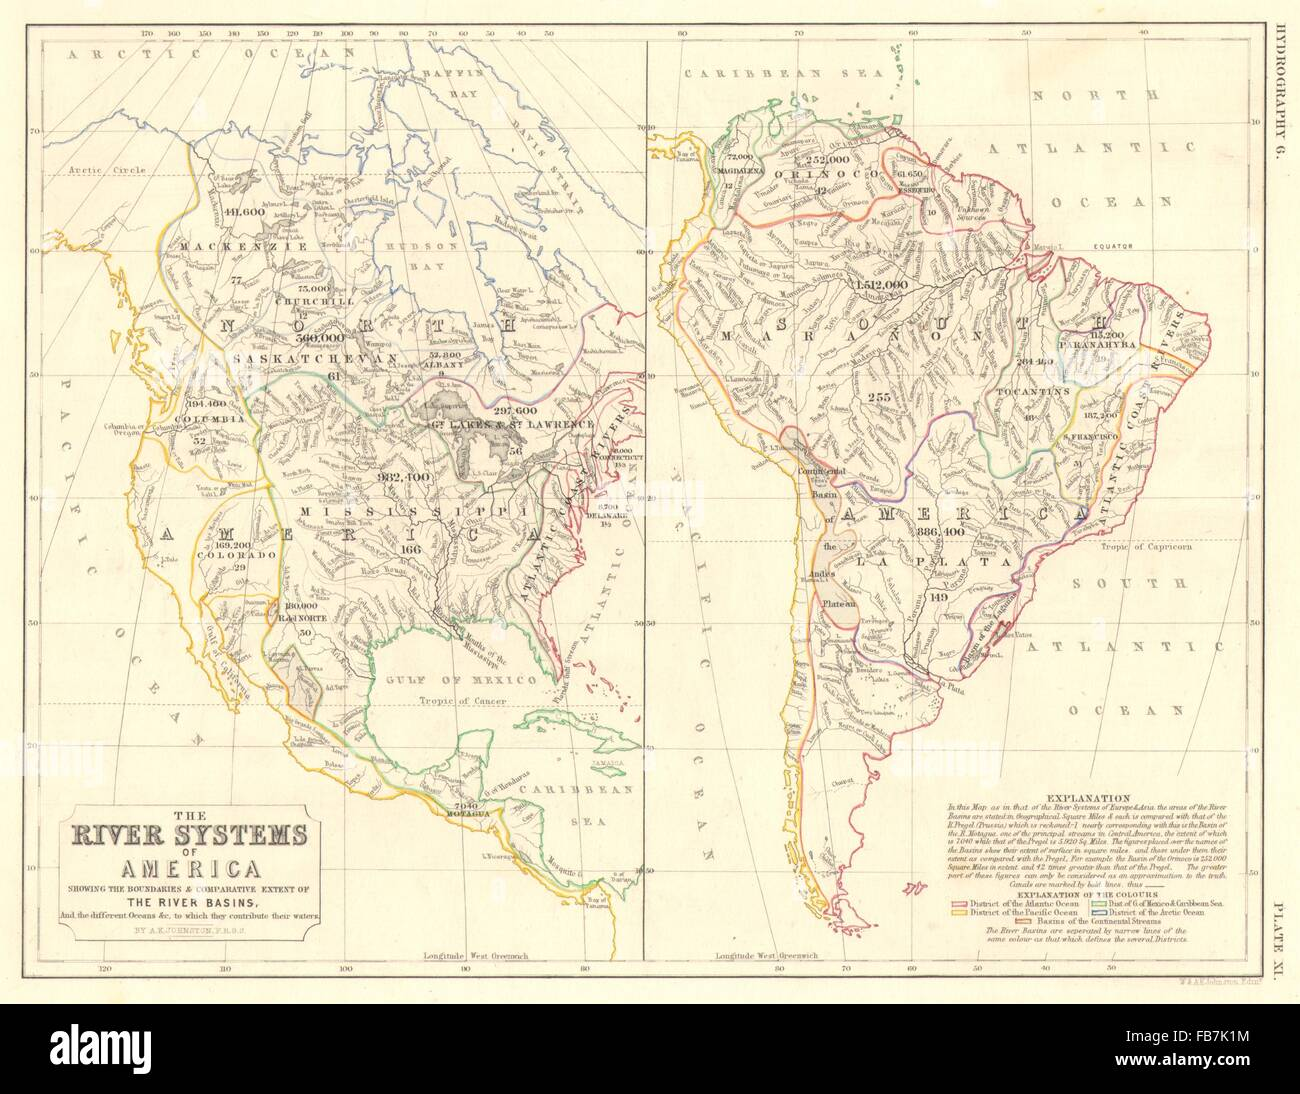 AMERICASNorth South America River Systems Drainage Stock Photo - America's rivers map